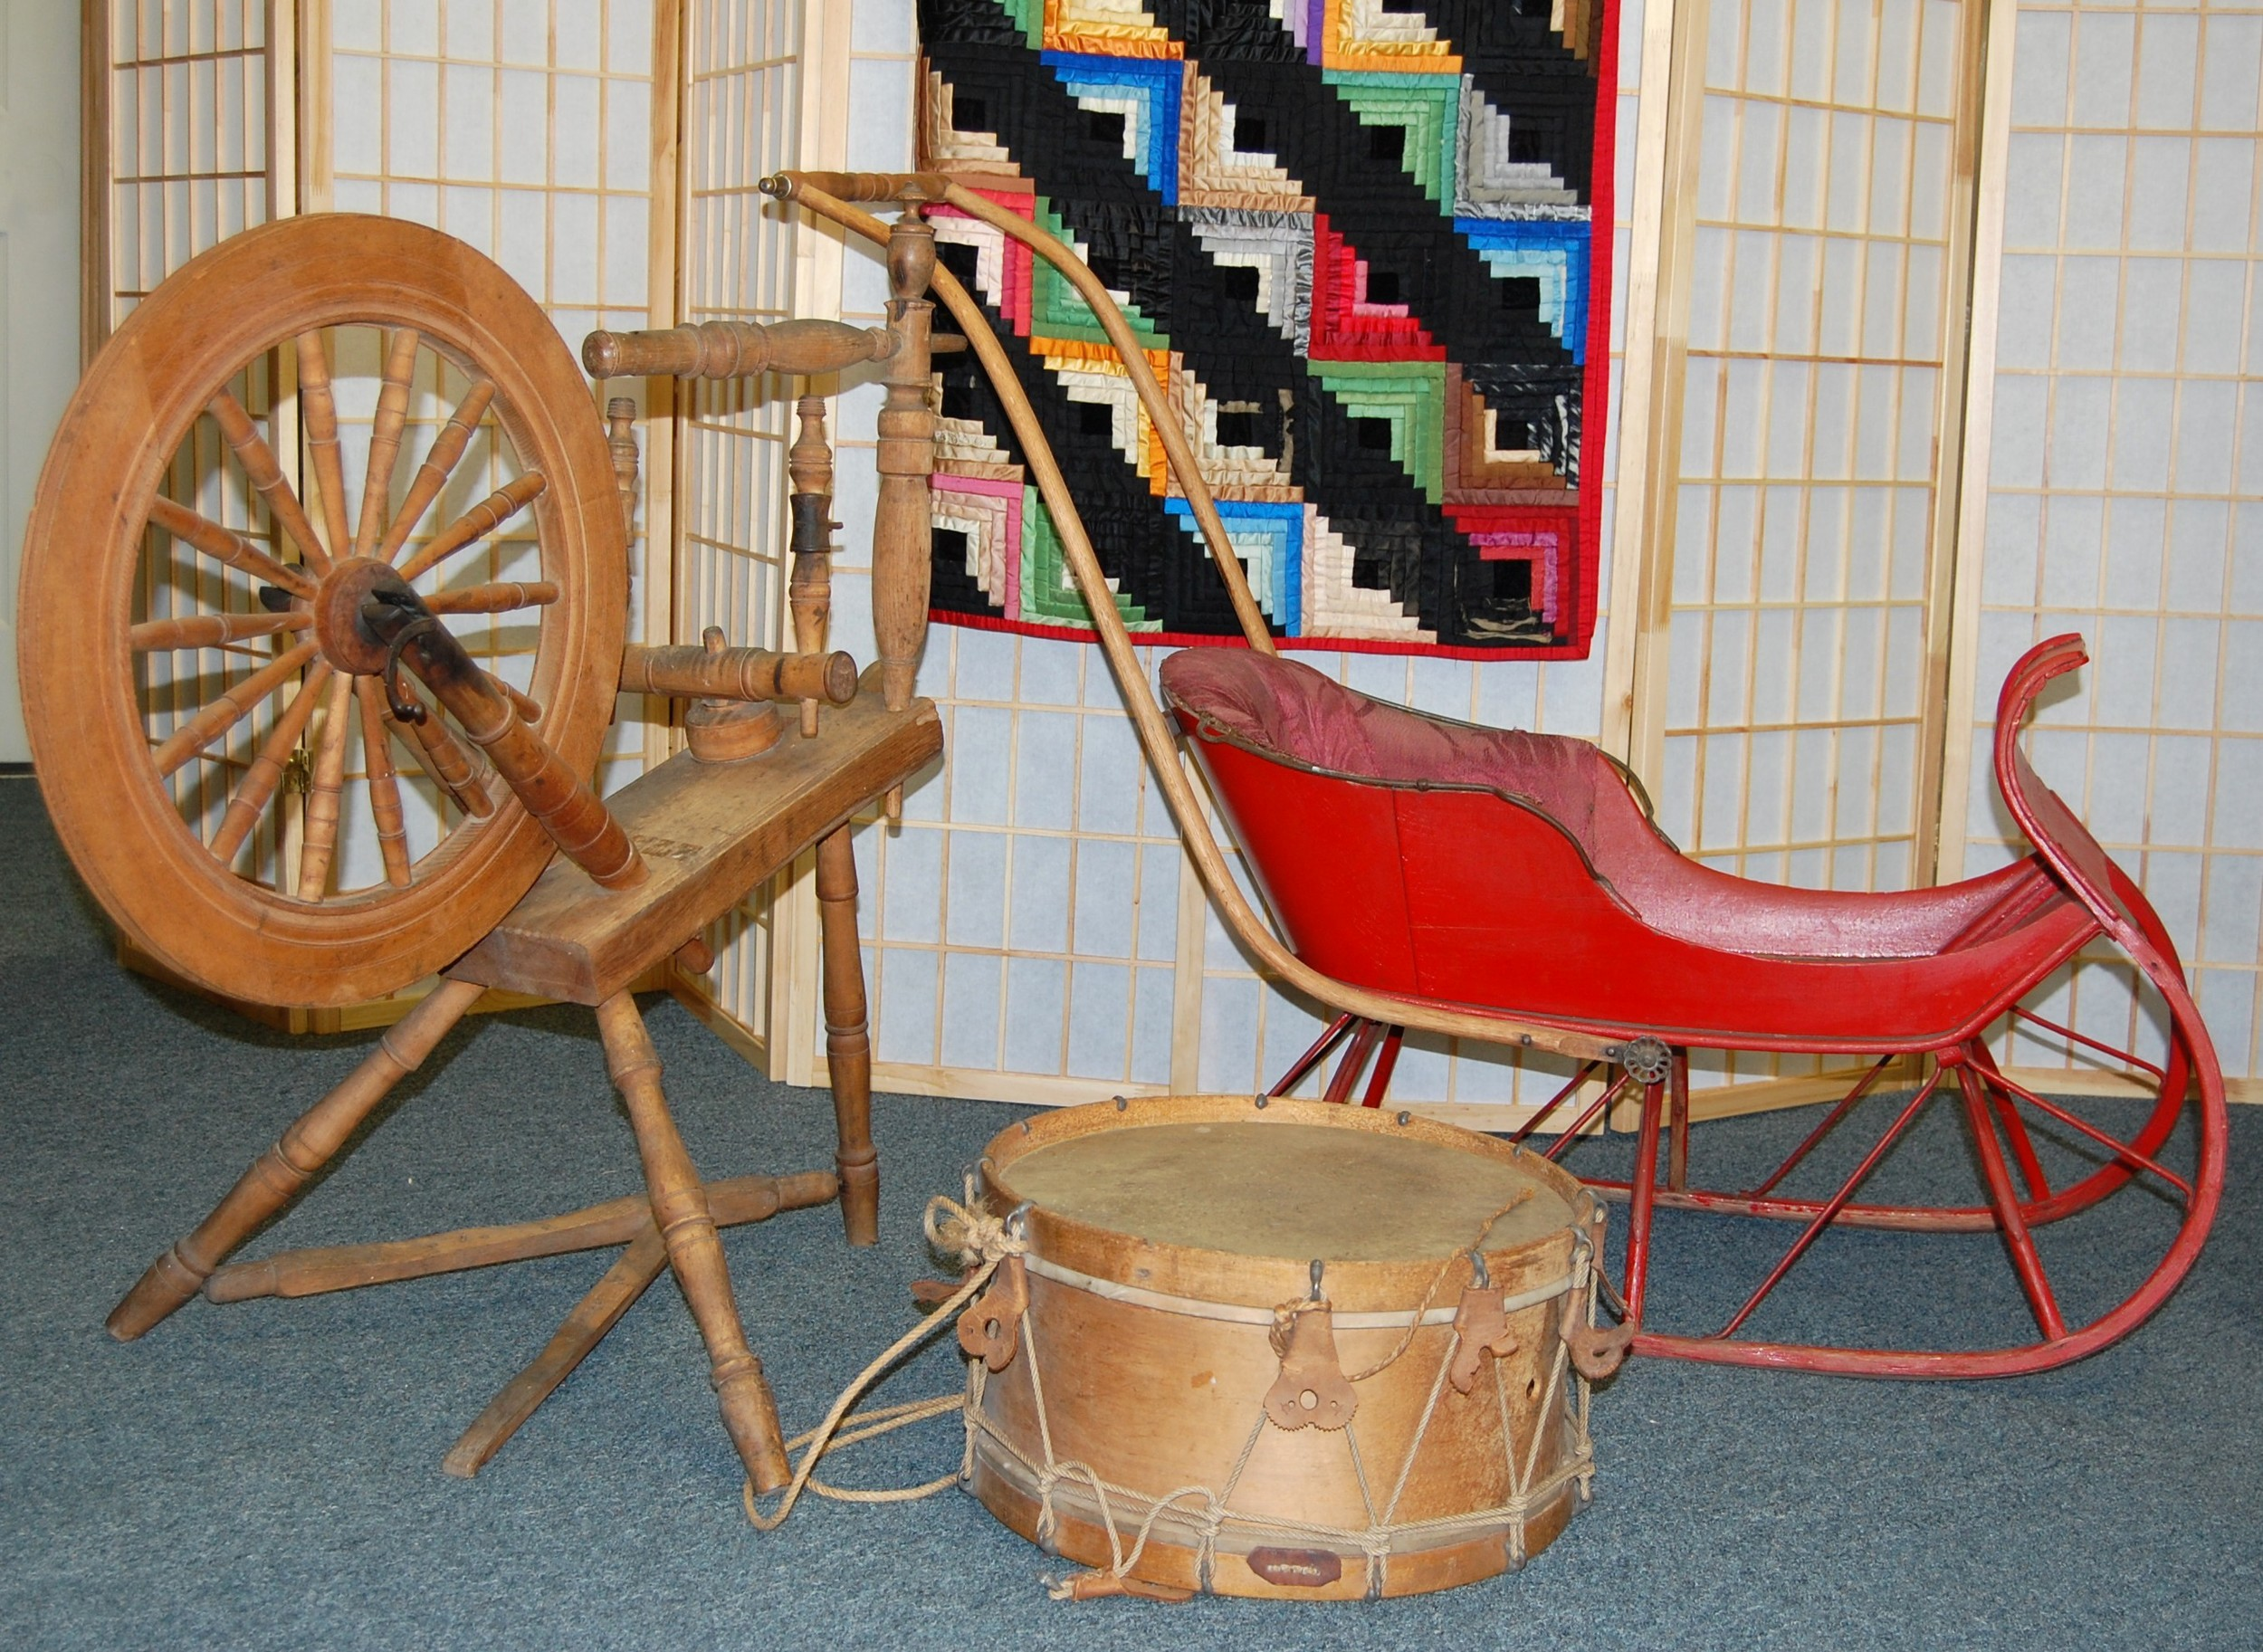 Sleigh, quilt, and drum